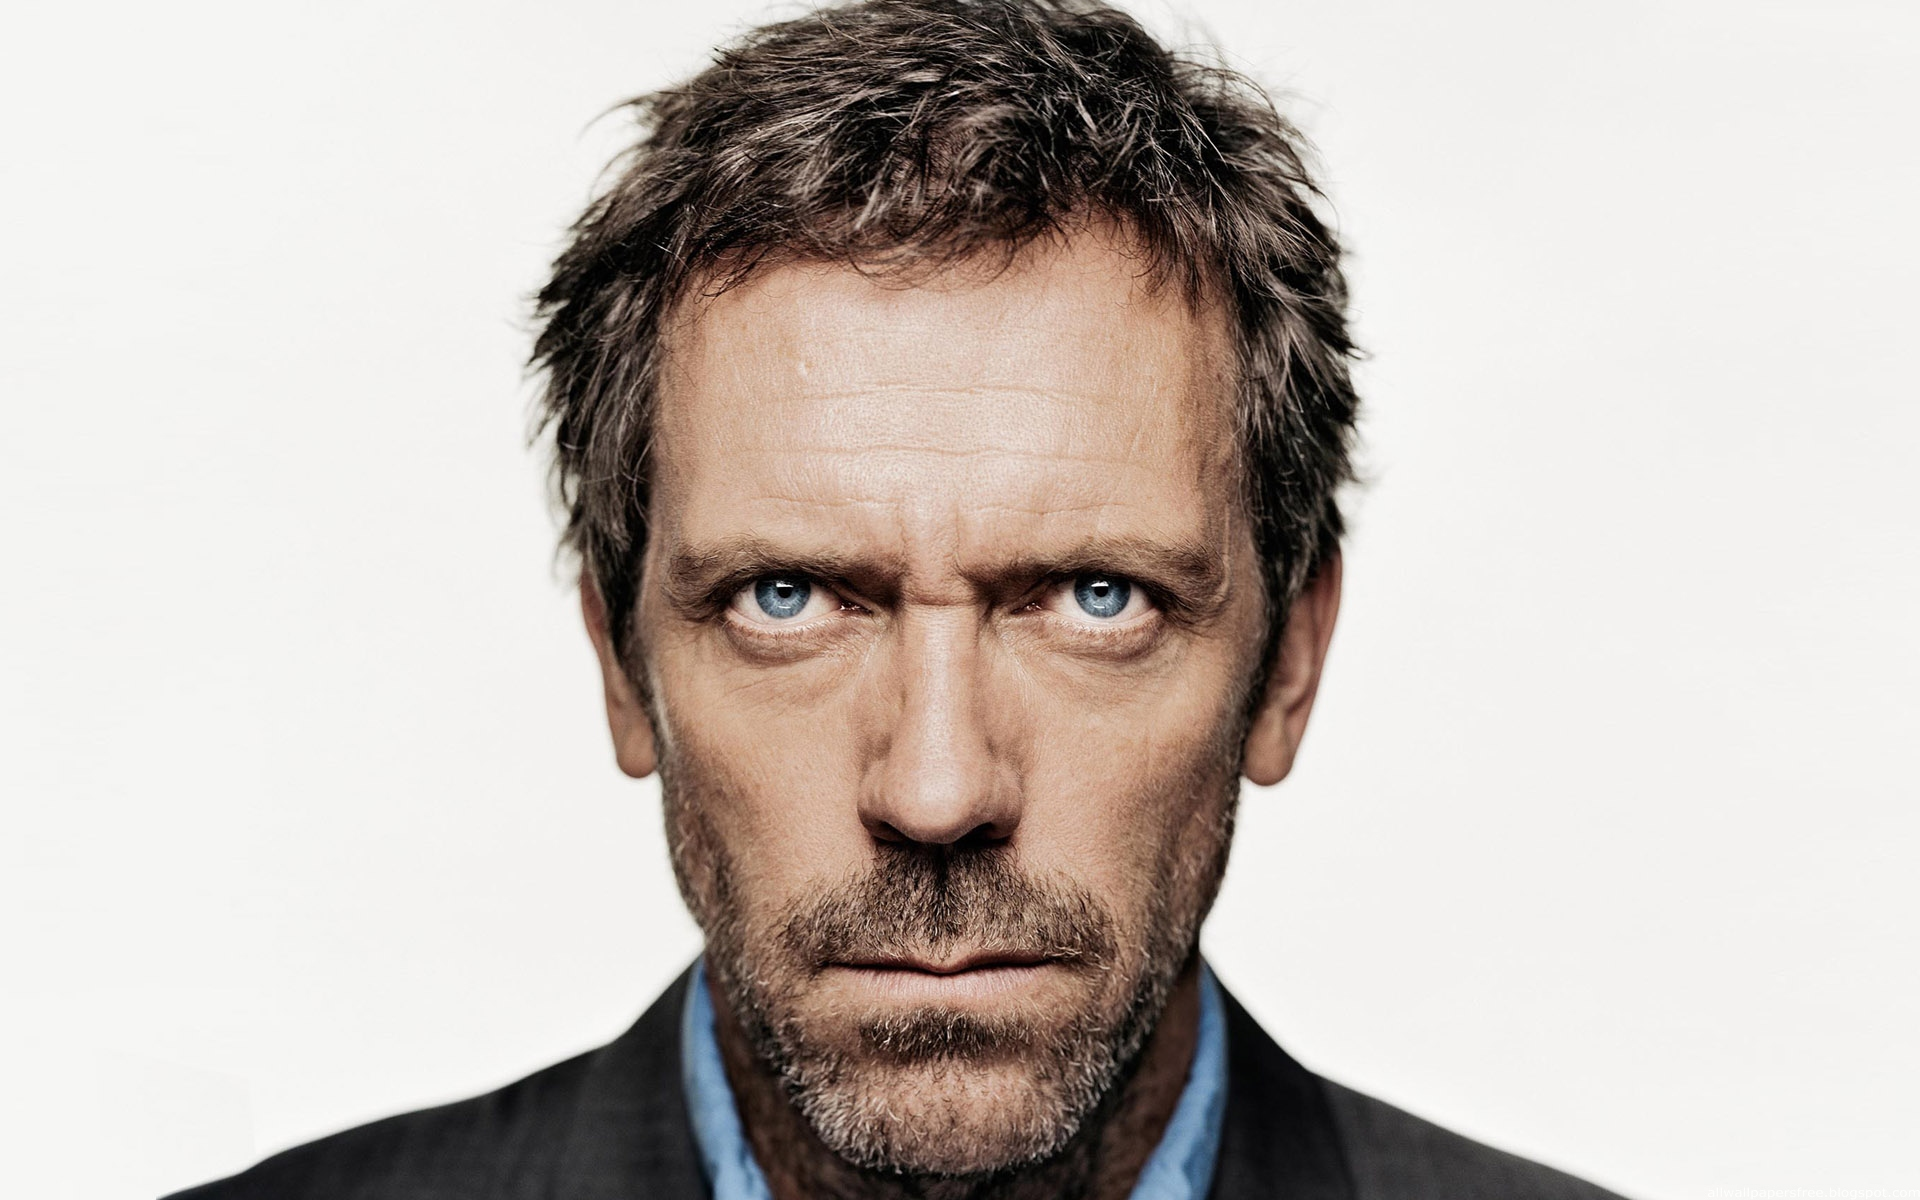 dr_gregory_house_wallpaper_1920x1200_1.jpg